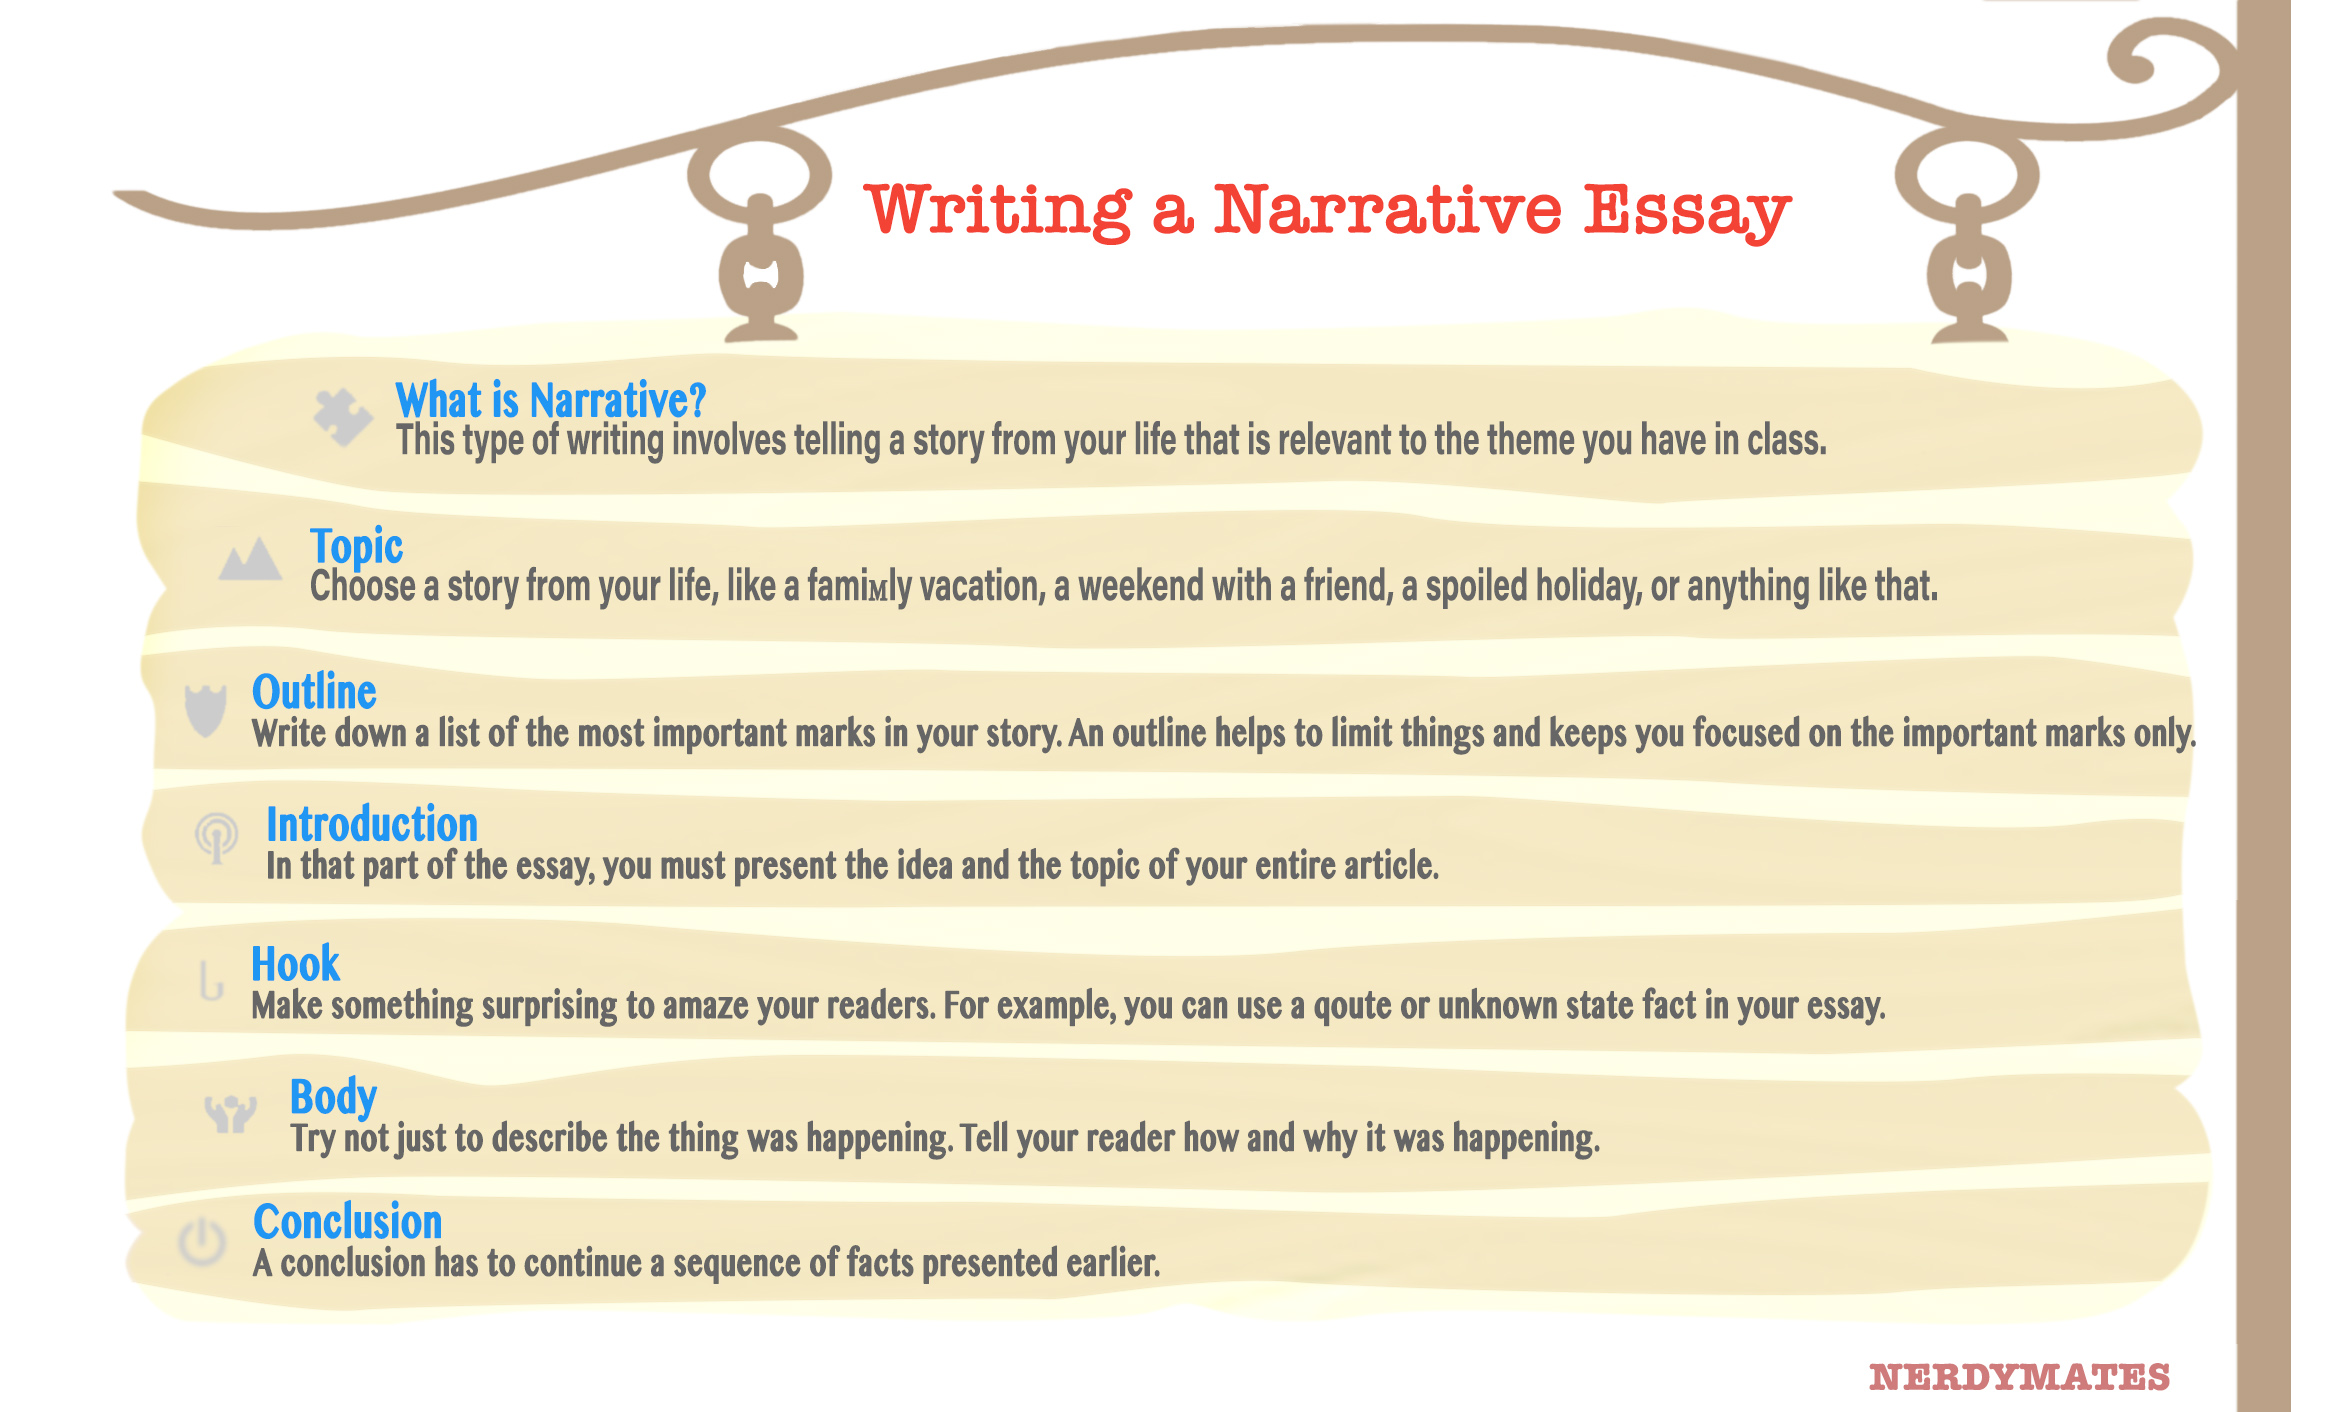 010 Narritive Essay Example Narrative Unforgettable Format Prompts Rubric Full